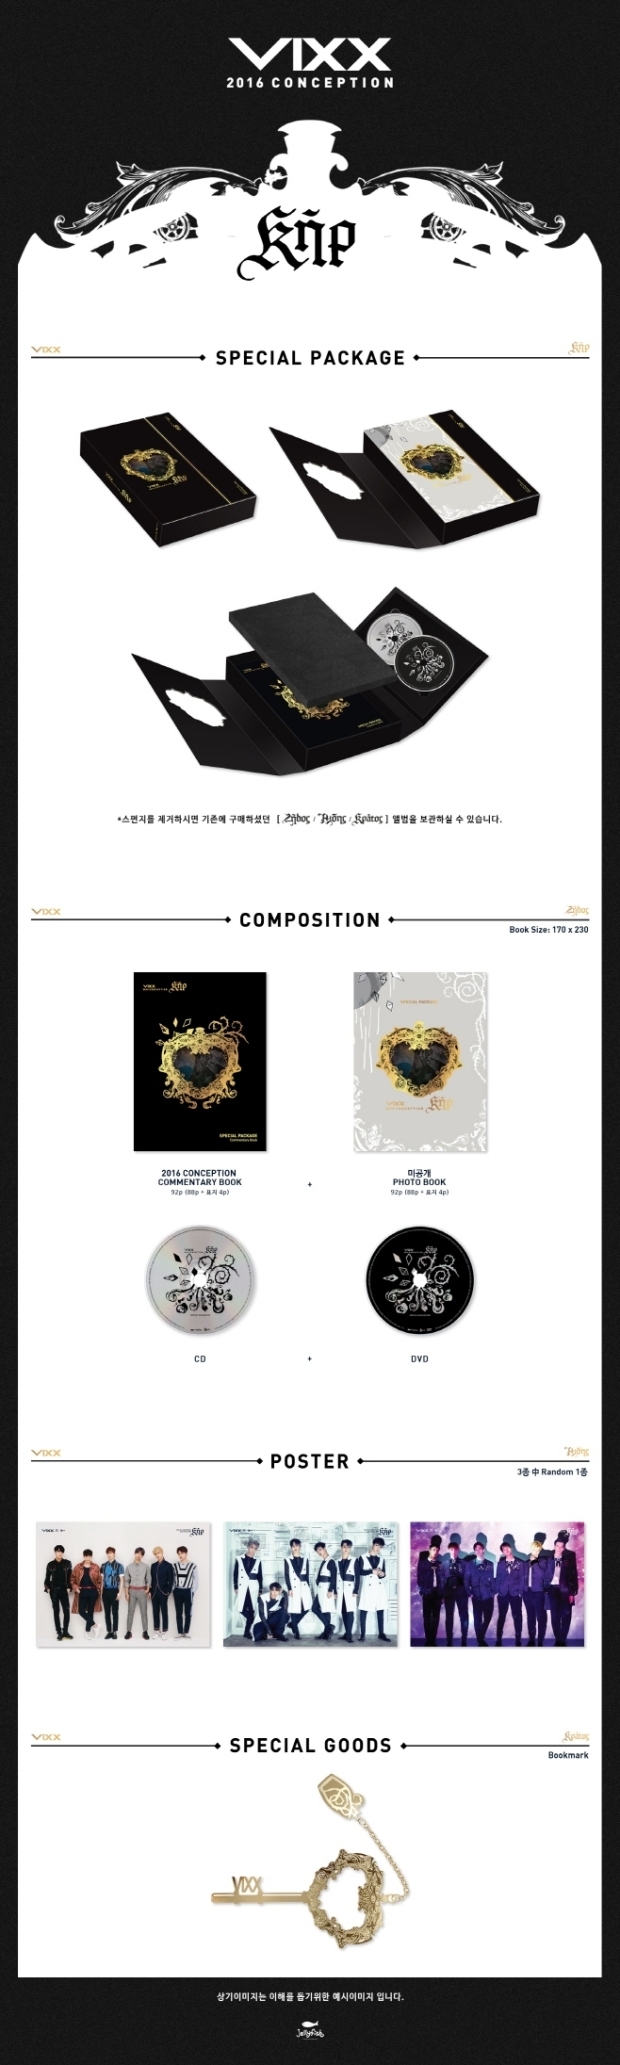 vixx-2016-conception-ker-special-package